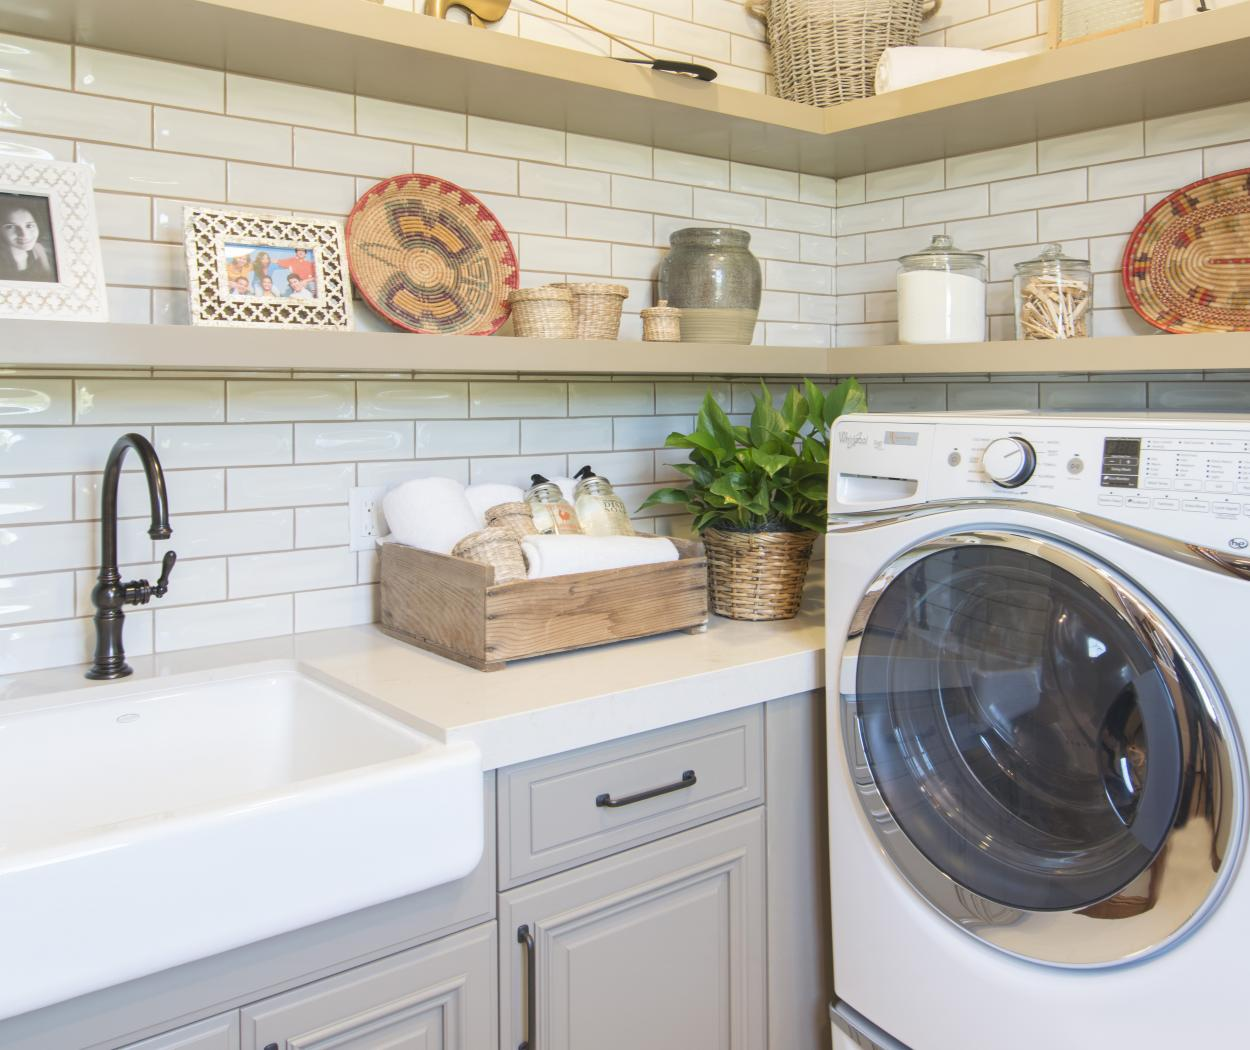 Traditional Painted Laundry Room Cabinets with a Farm House Sink, Oil Rubbed Bronze Faucet, Floating Shelves and Whirlpool Washer - Dryer